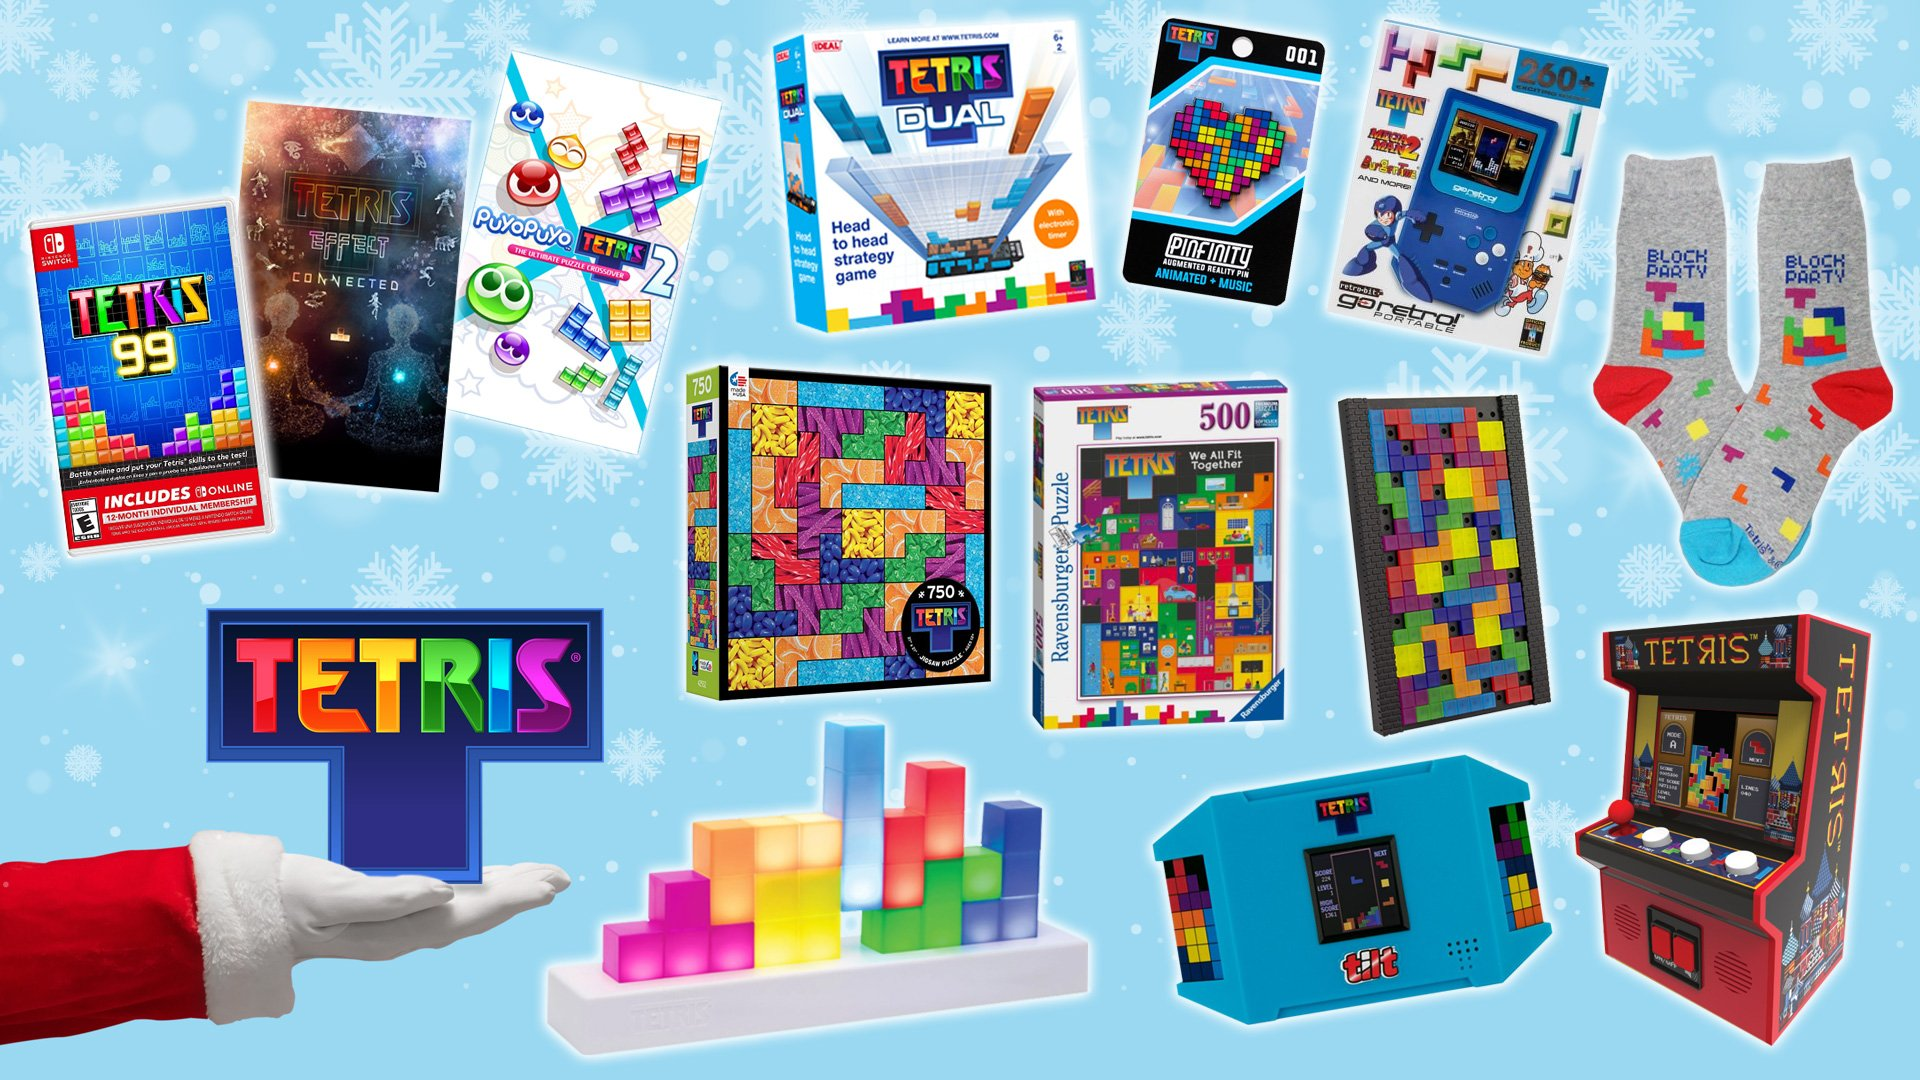 Tetris 2020 Holiday Gift Guide